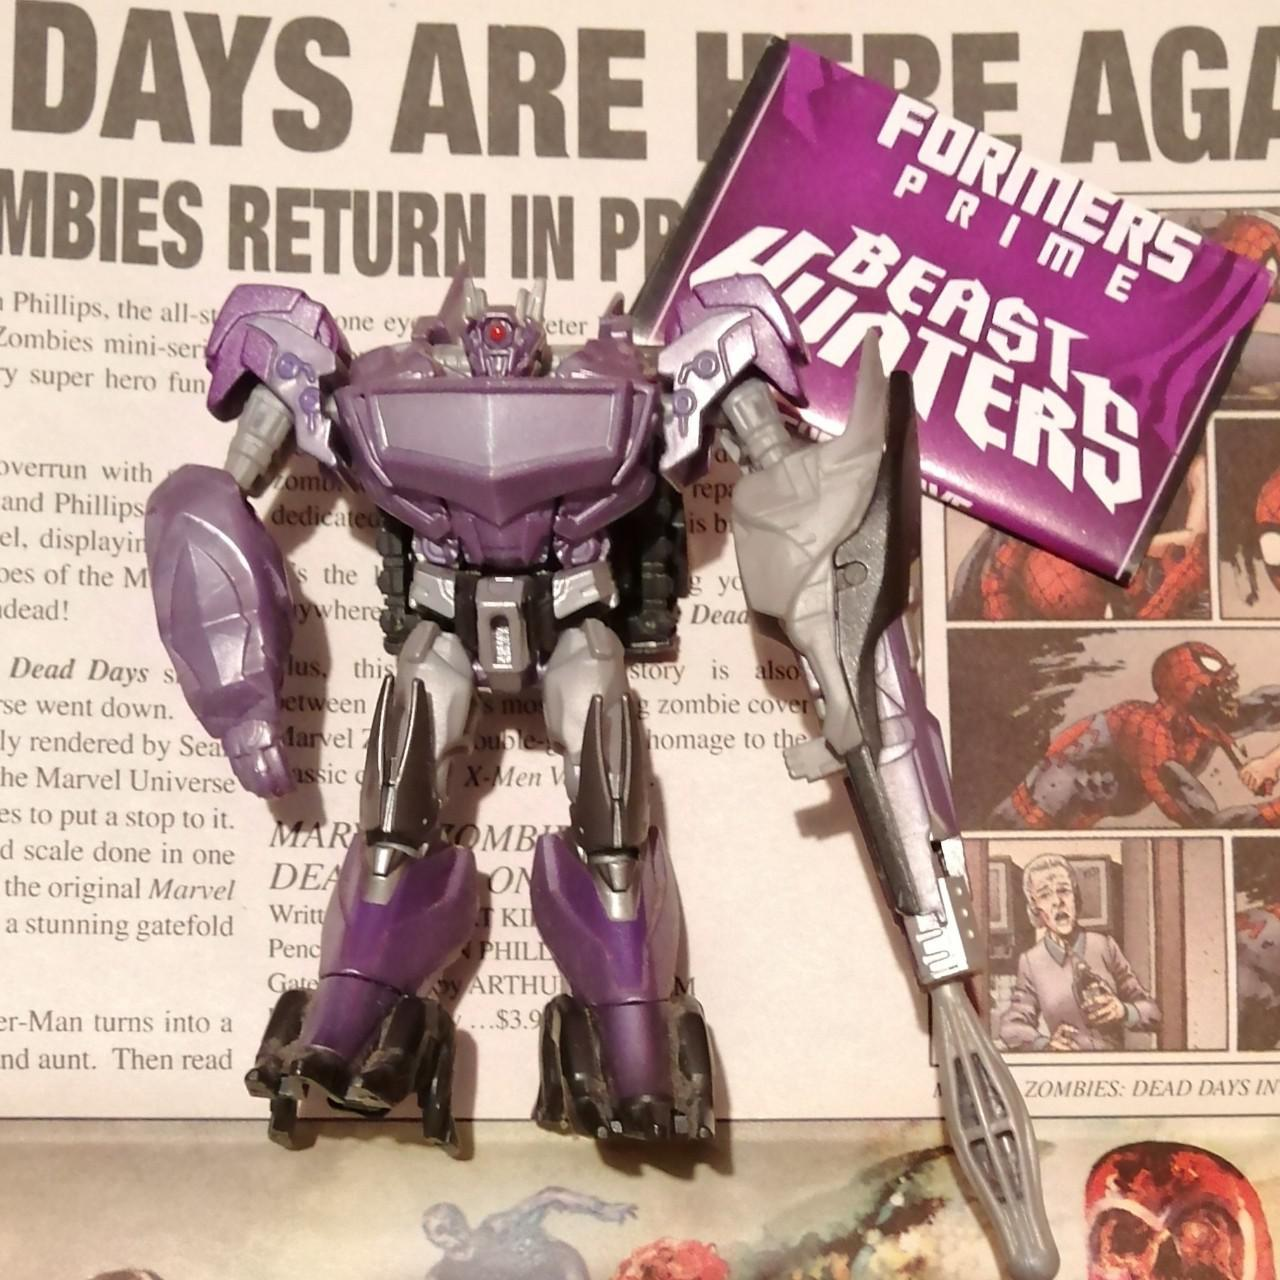 Product Image 1 - TRANSFORMER FIGURE. Transformable figure. From the